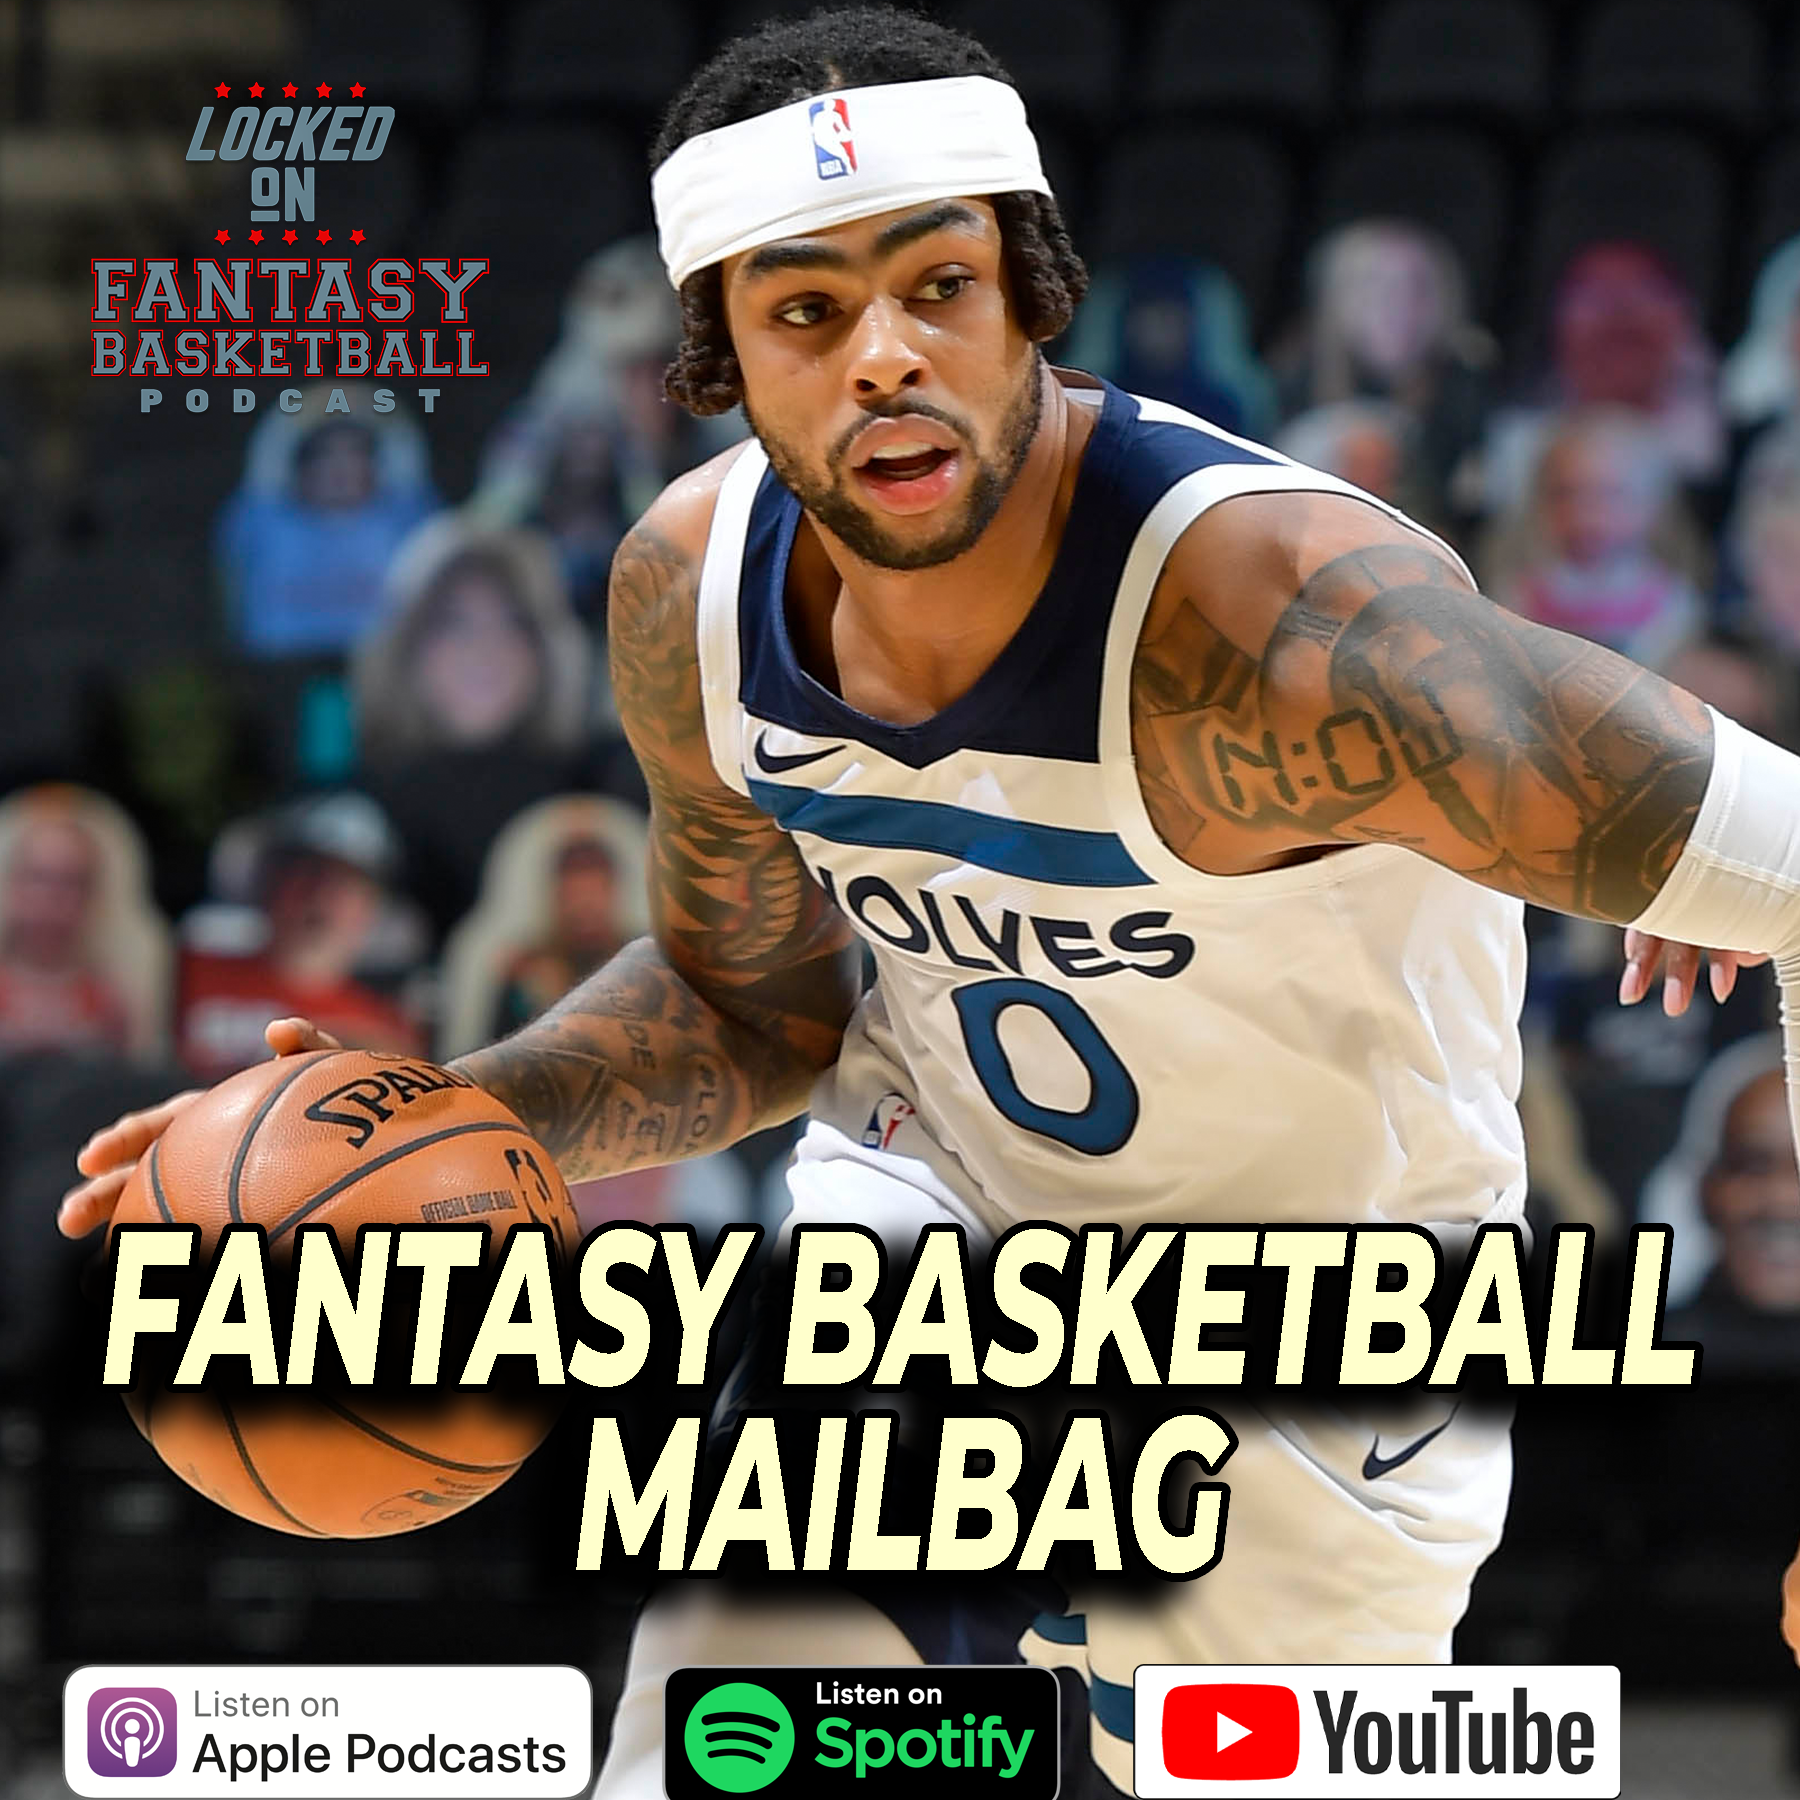 NBA Fantasy Basketball Mailbag | Questions Asked, Questions Answered